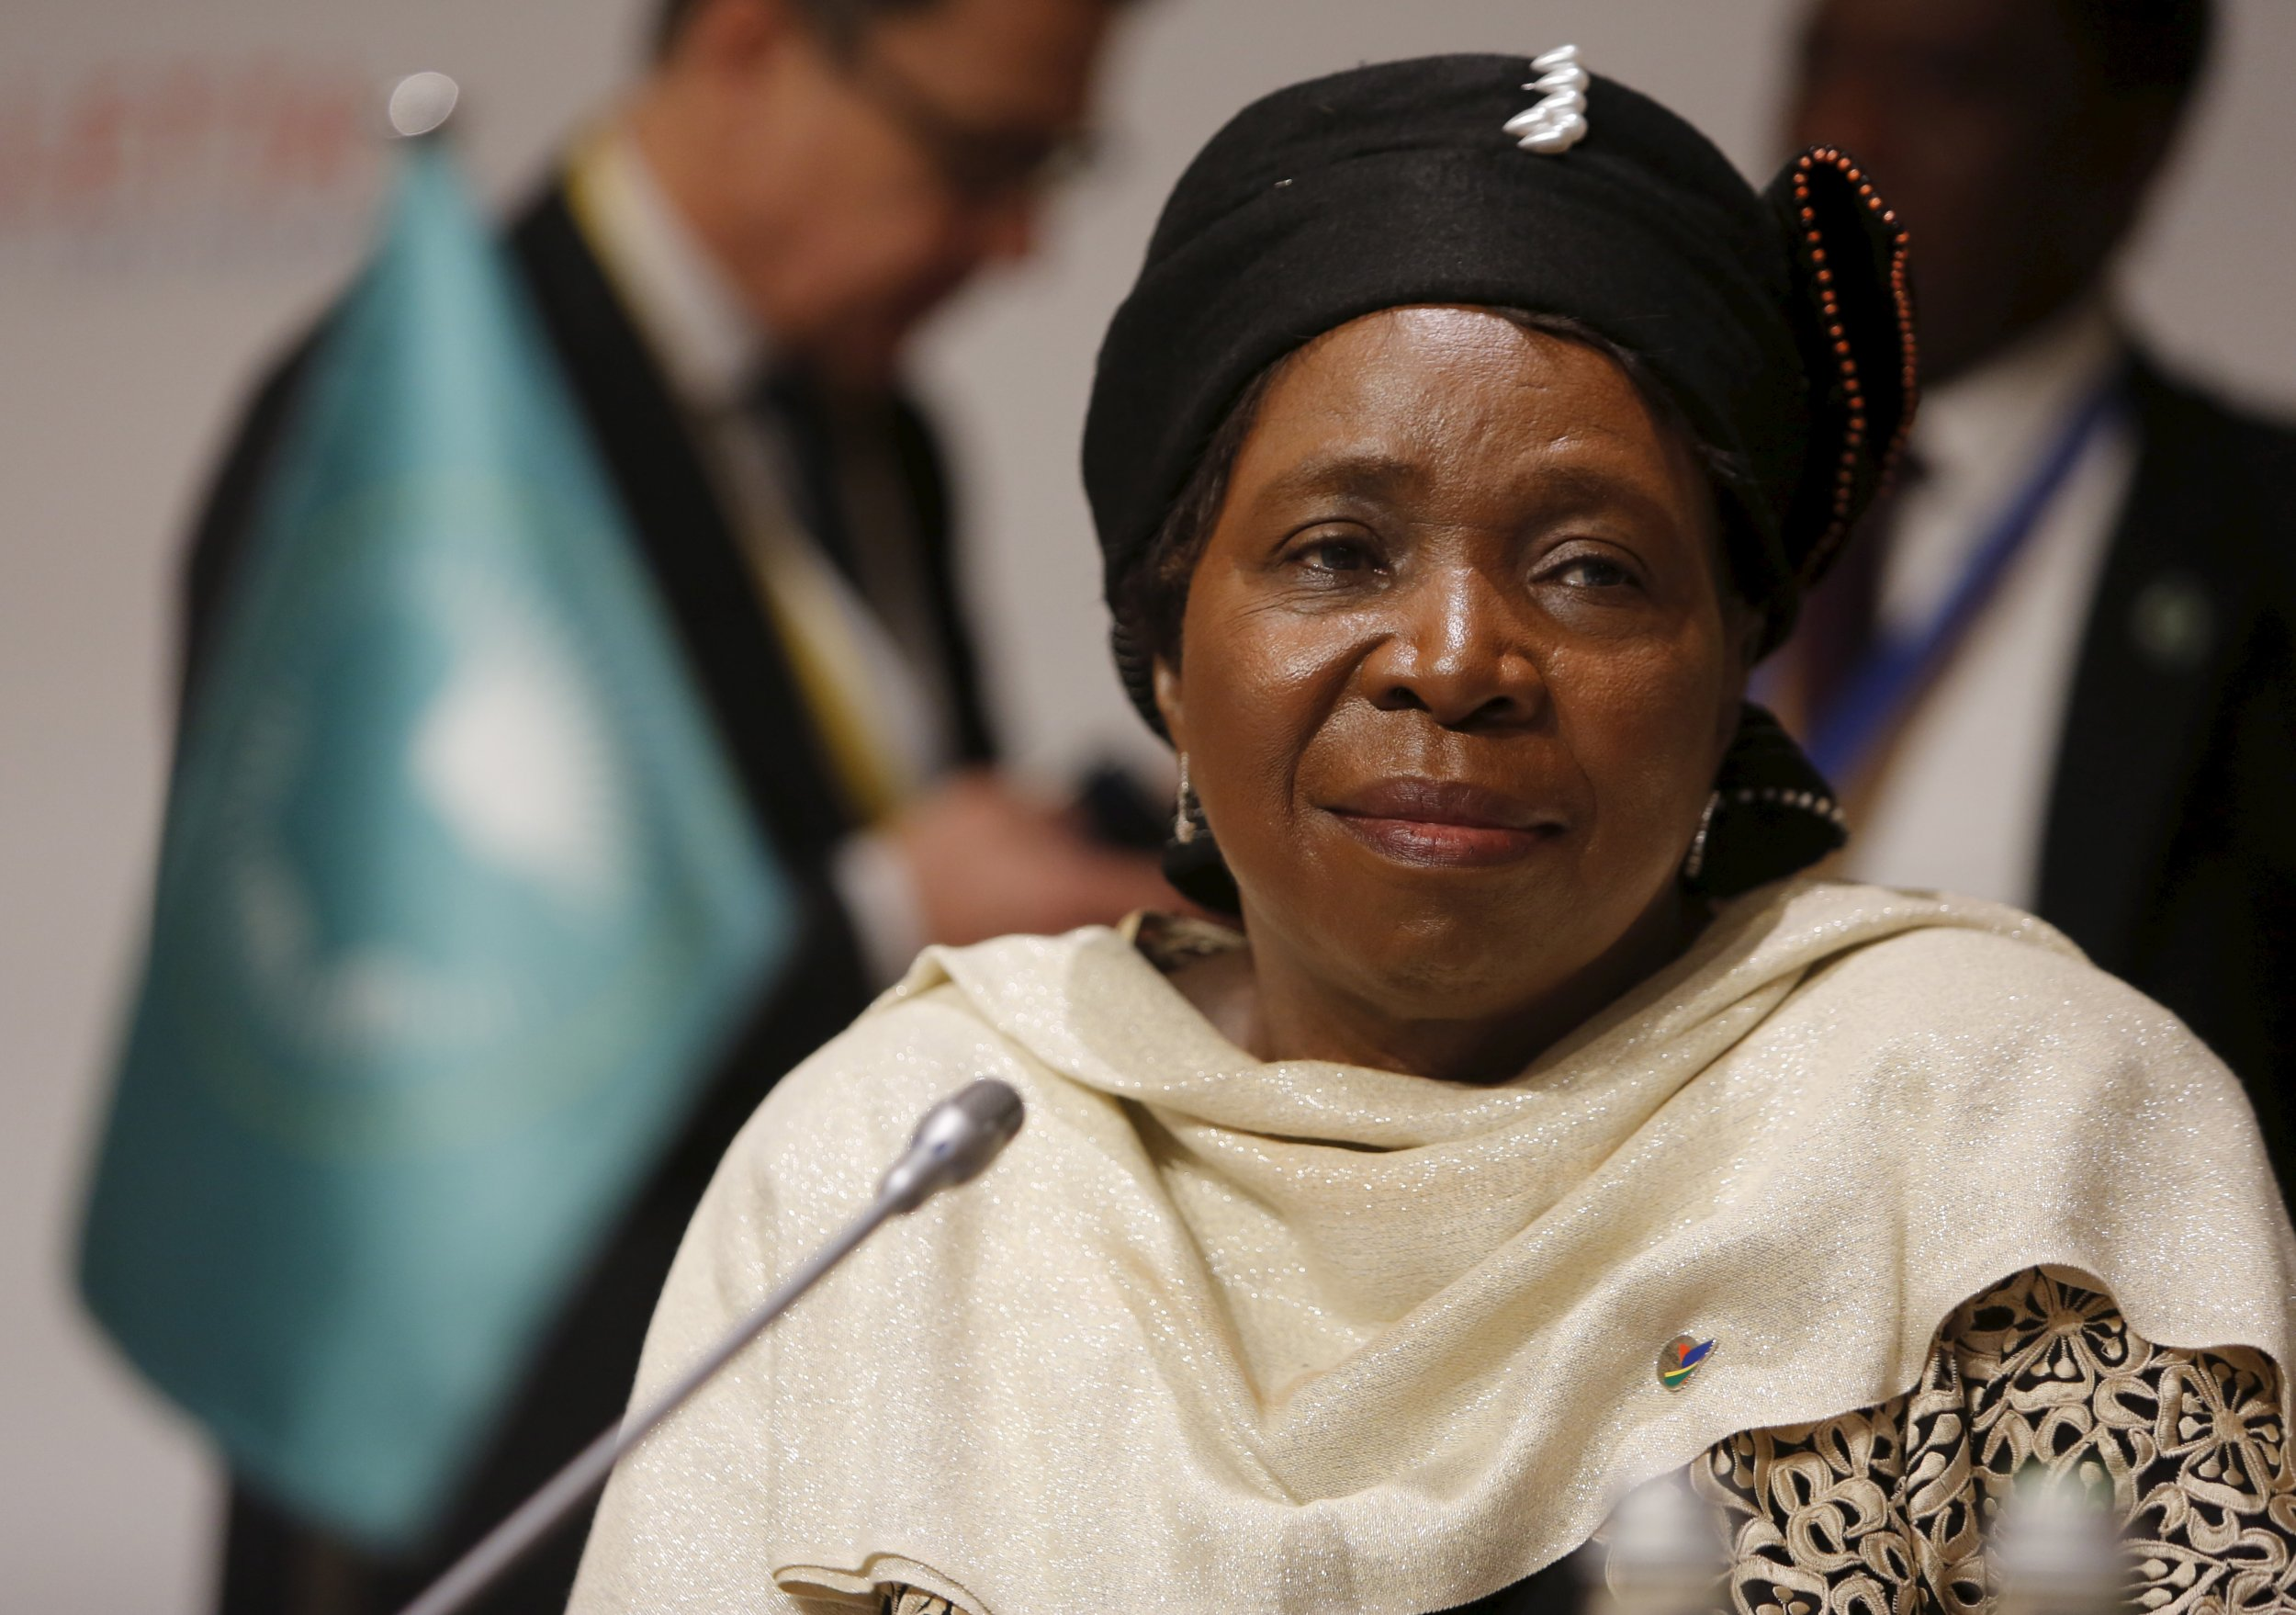 African Union chairperson Nkosazana Dlamini-Zuma attends the Valletta Summit in Malta.